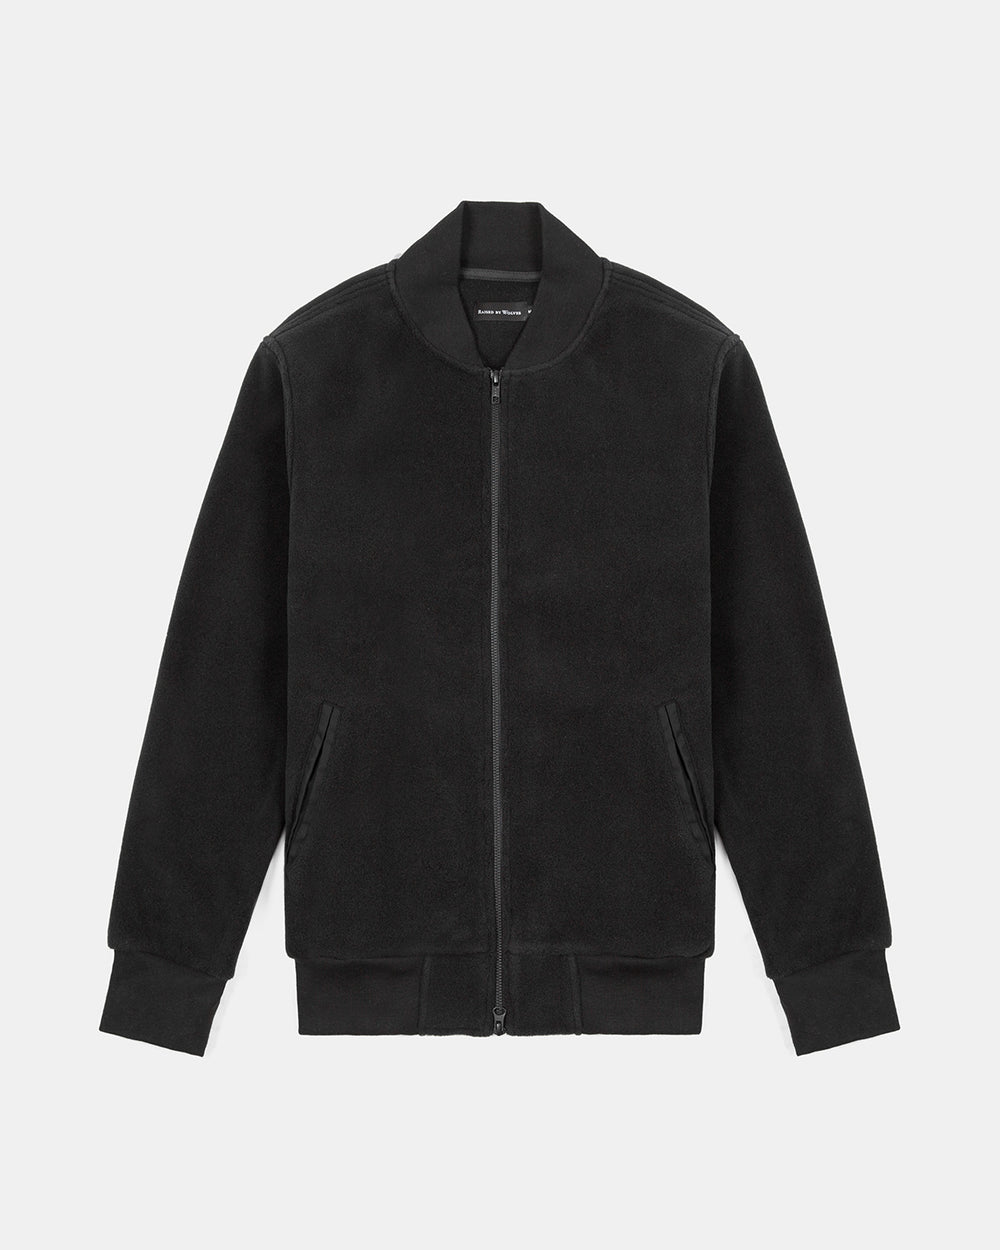 Raised by Wolves - Polartec Stacked Bomber Jacket (Black)